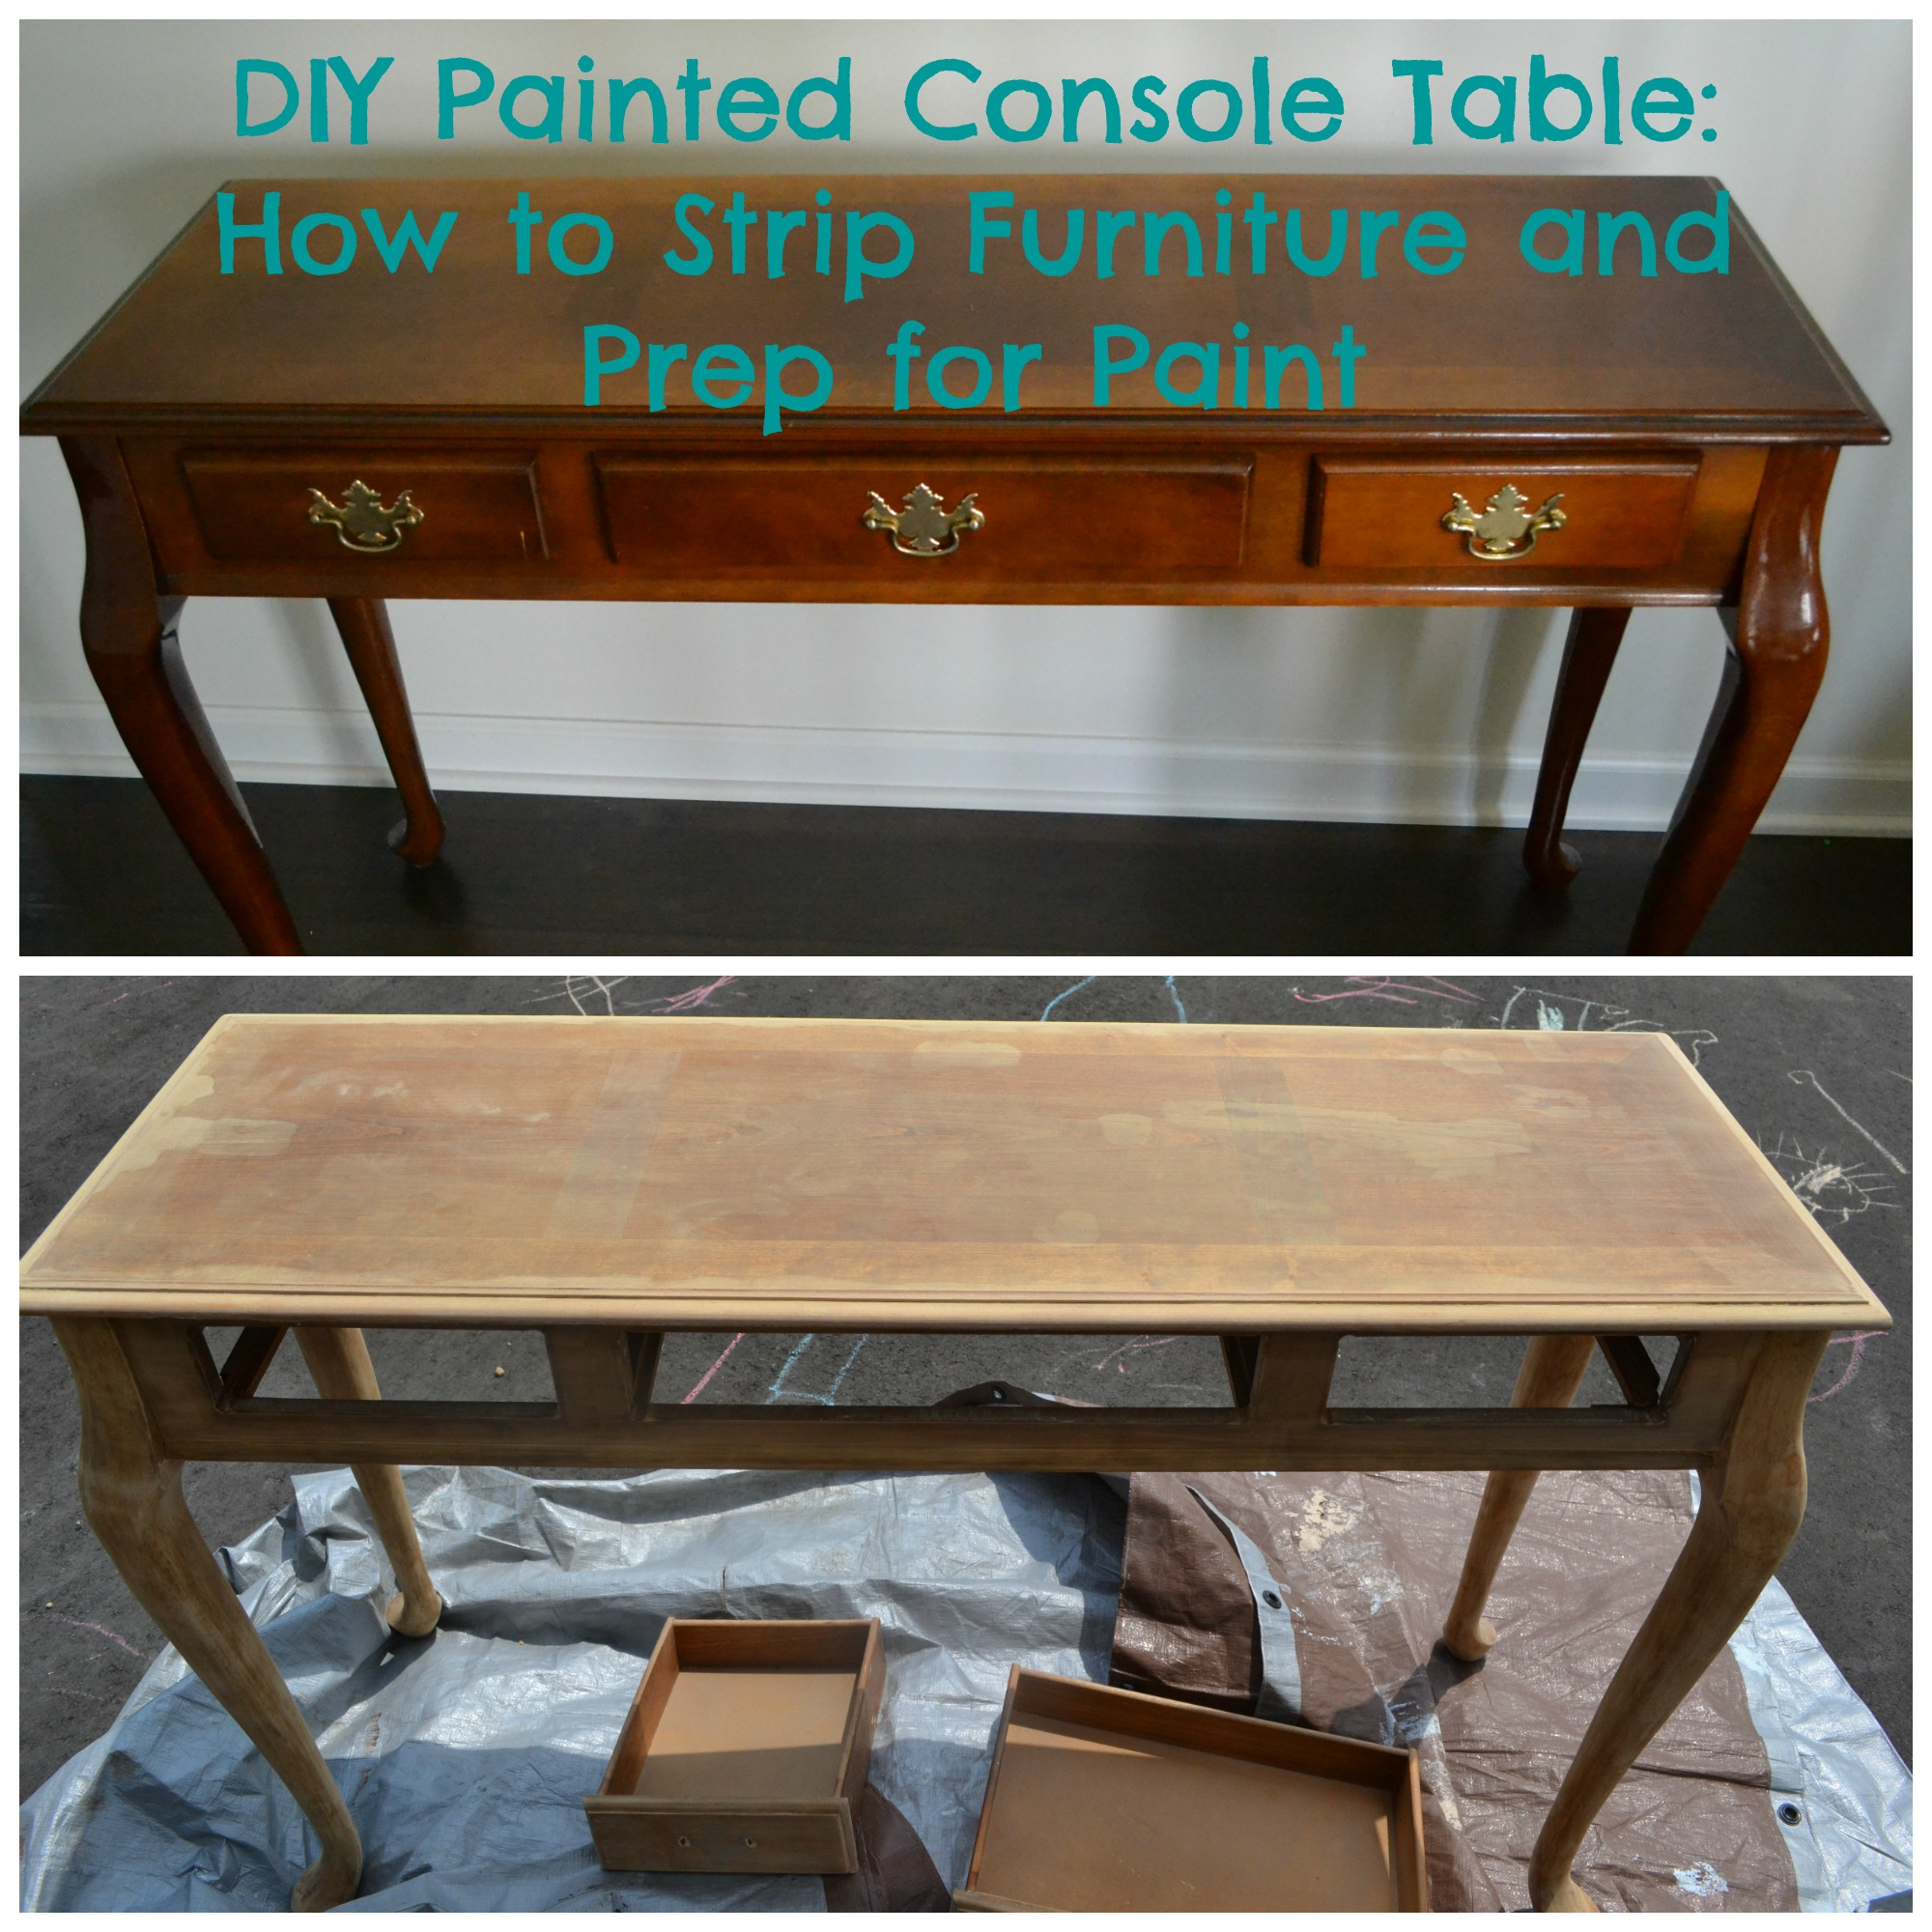 Diy painted console table how to strip furniture and prep for diy painted console table how to strip furniture and prep for paint geotapseo Images